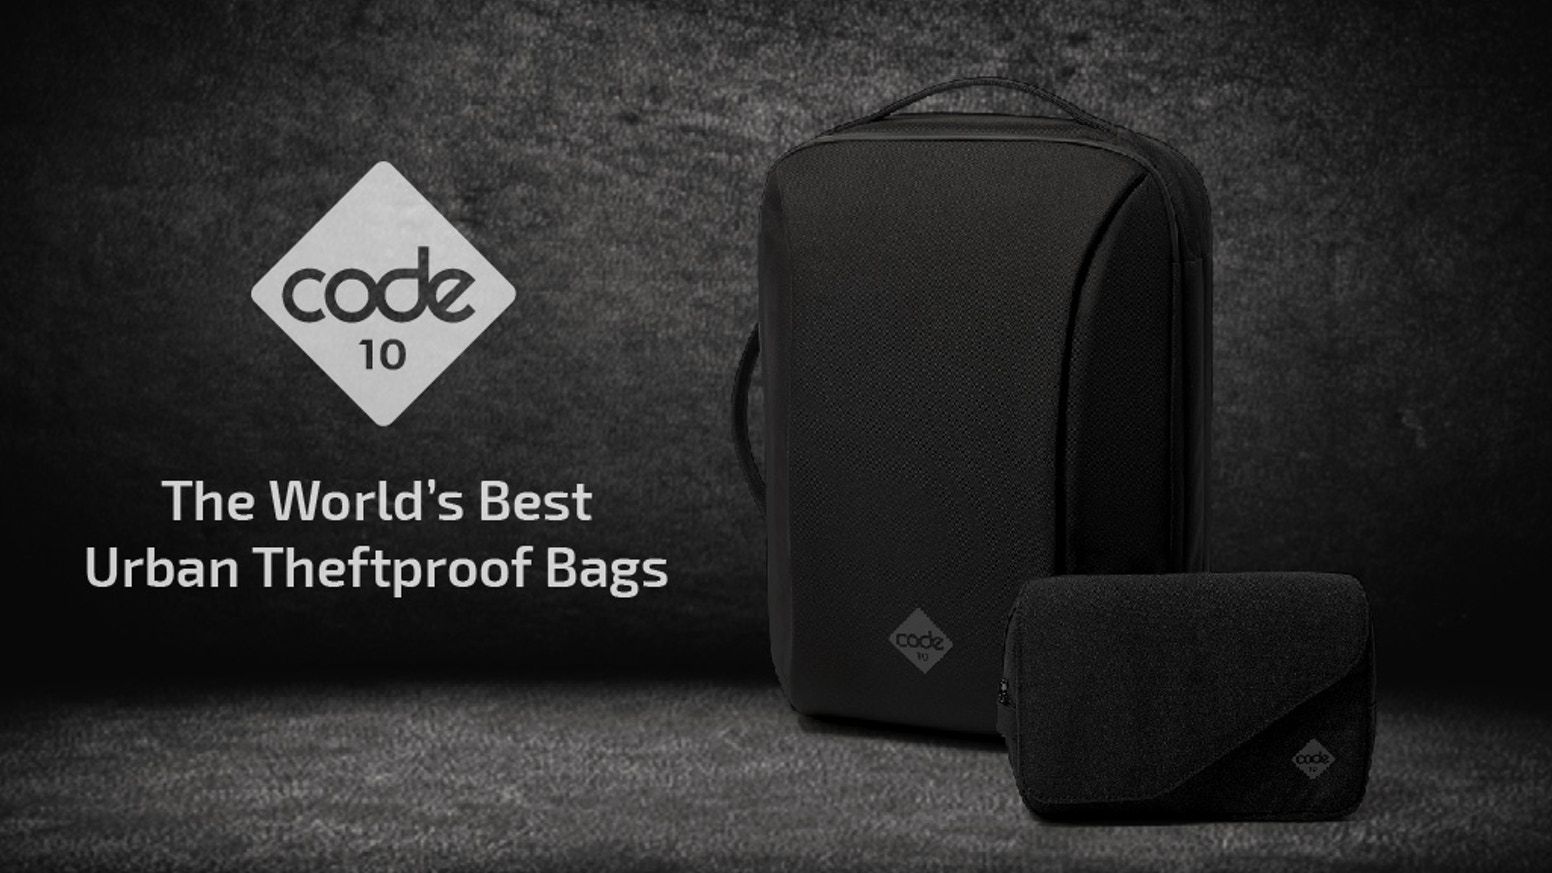 Code10's Urban Theftproof Bags are designed to be the perfect every day carry - keeping your essentials perfectly organised and secure.